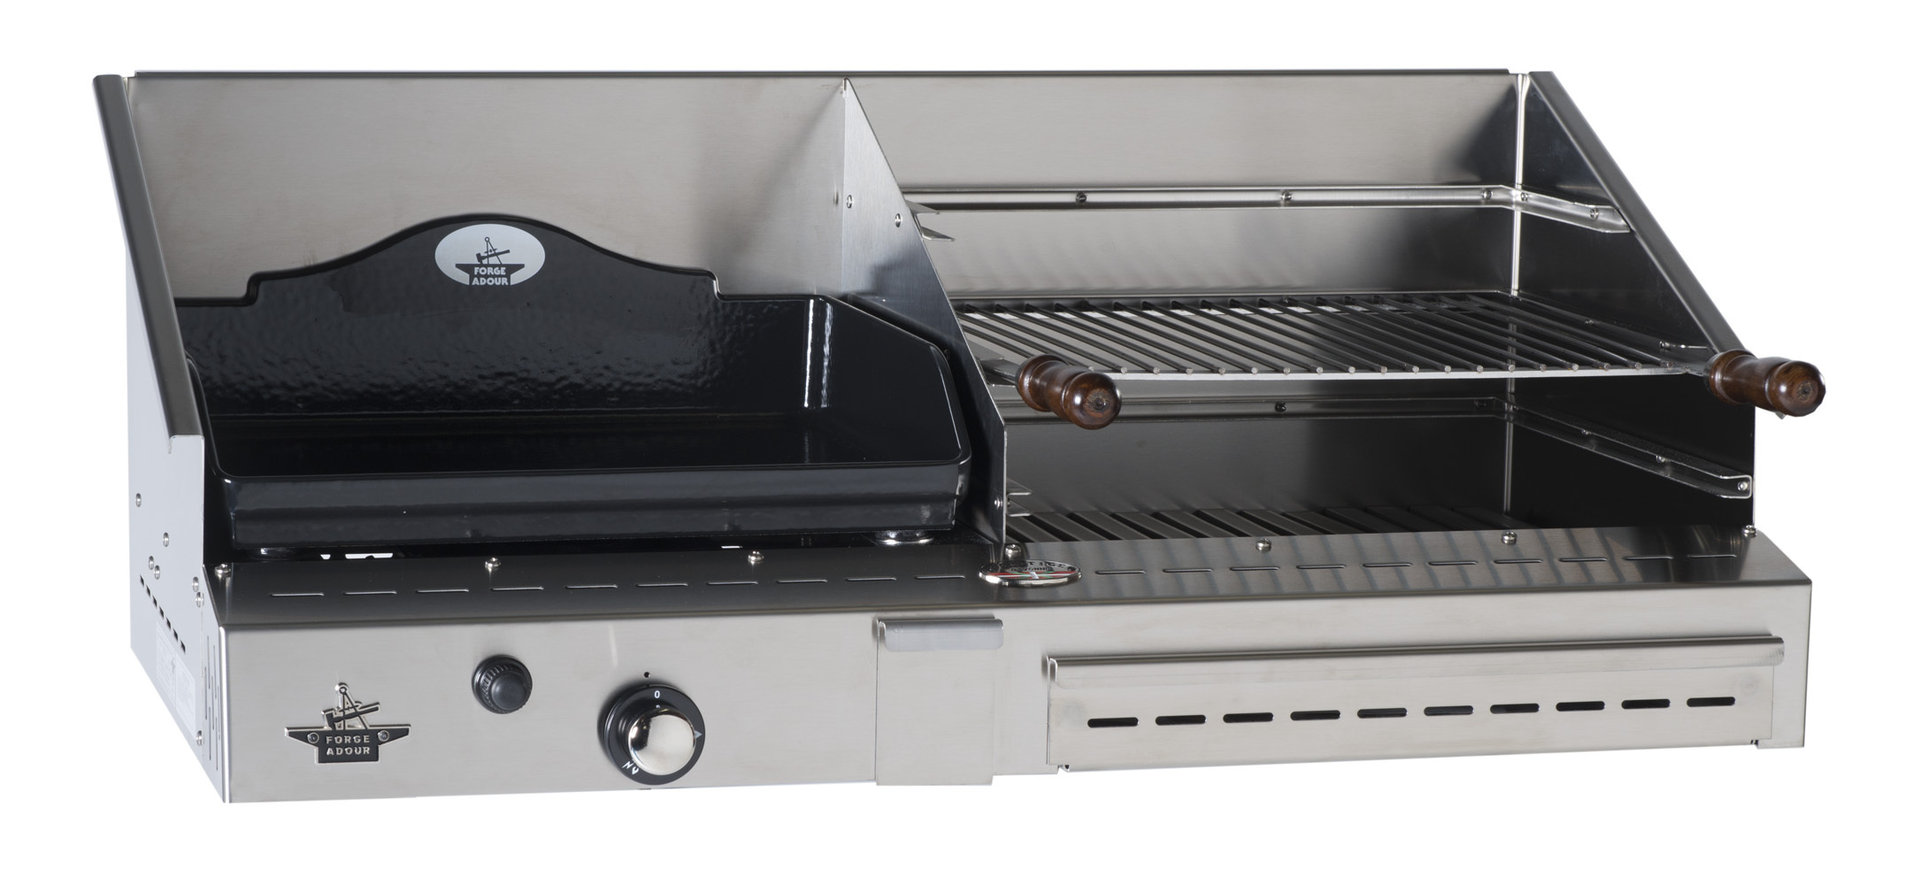 Barbacoas De Gas Y Carbon Duo Plancha De Gas Y Barbacoa 500 Inox The Barbecue Store